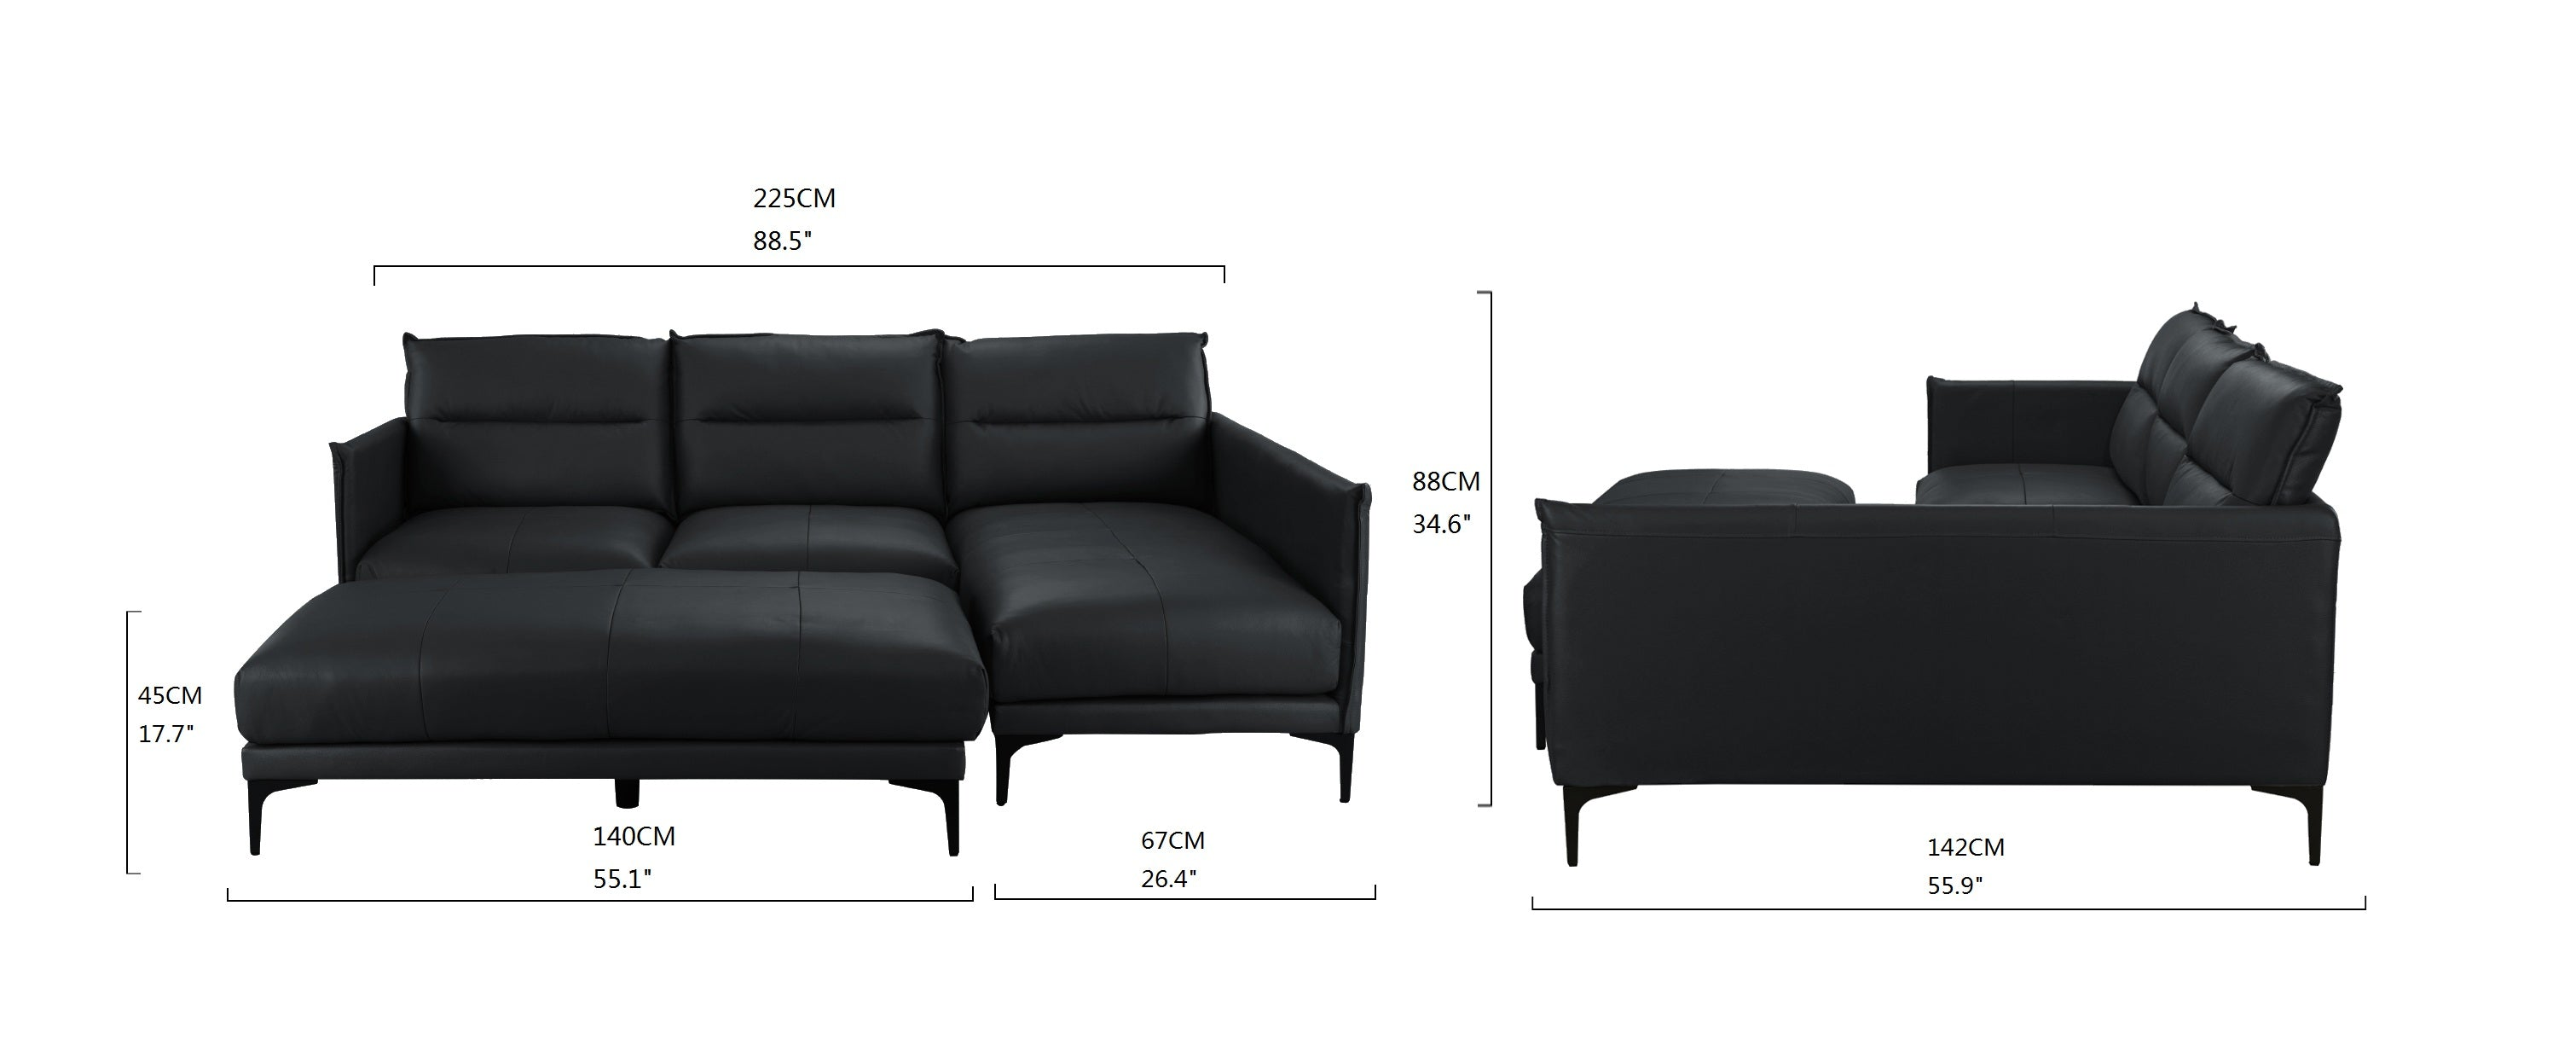 Fantastic Tony New Wave Leather Match Sectional With Ottoman Machost Co Dining Chair Design Ideas Machostcouk